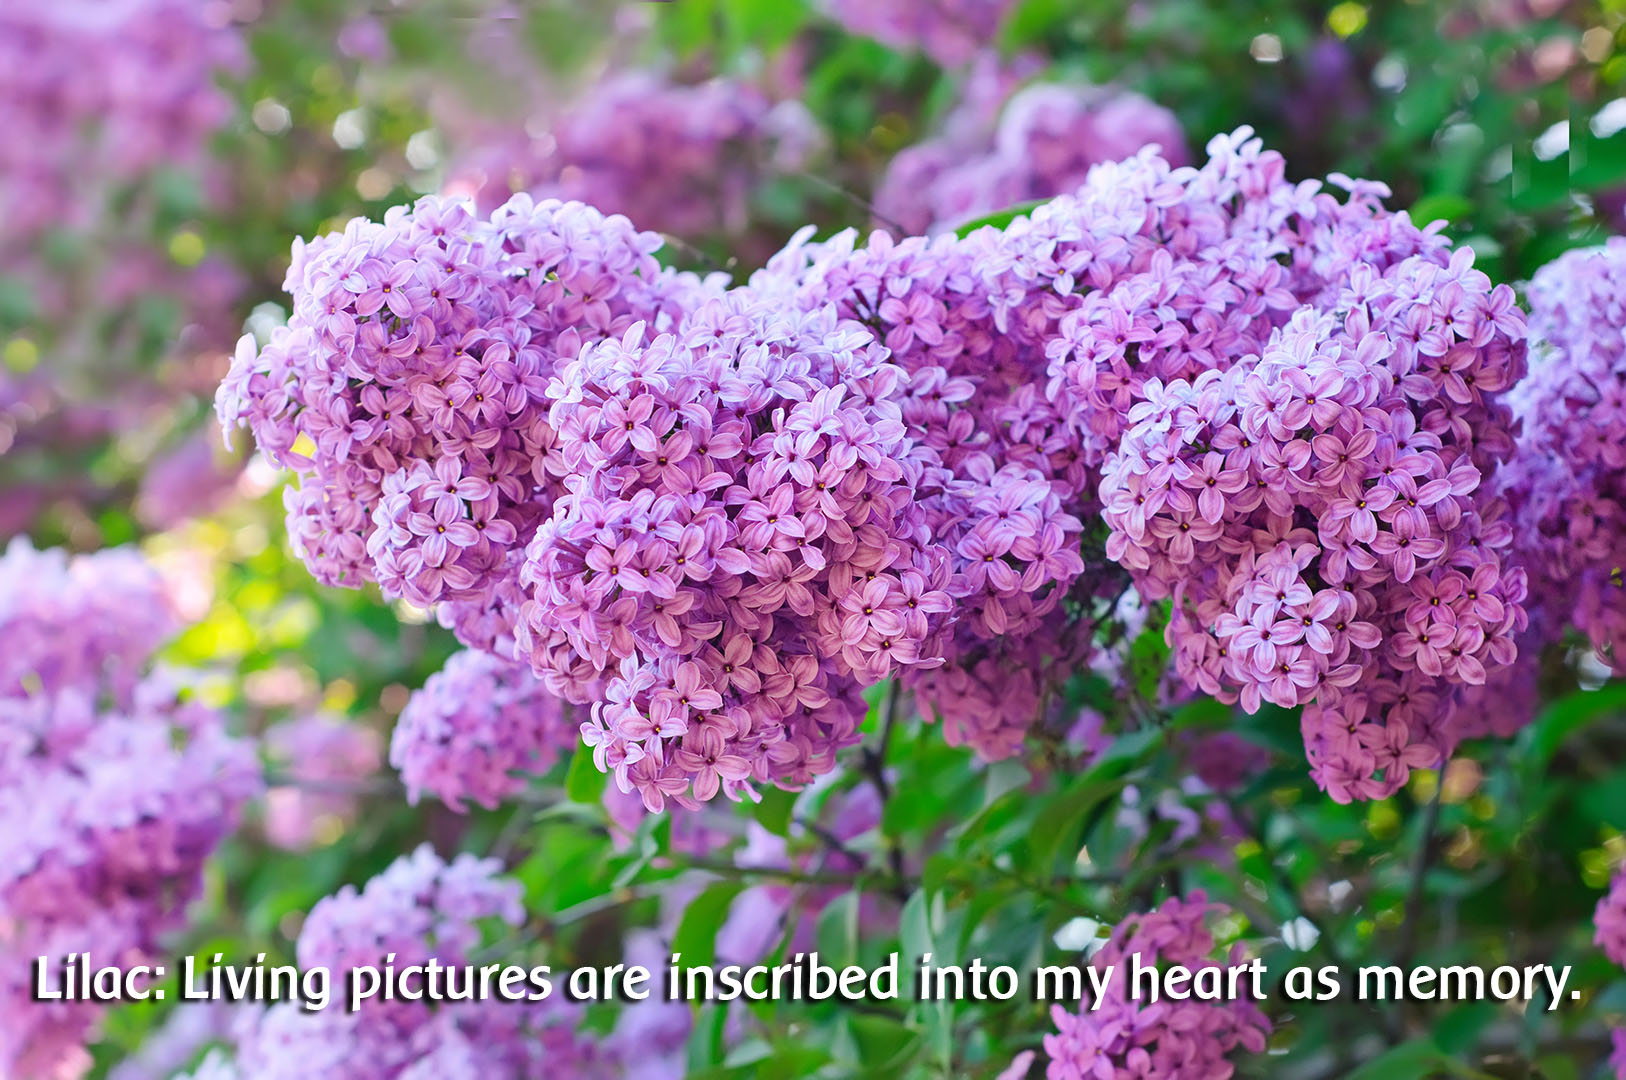 Lilac: Cultivating Positive Memories